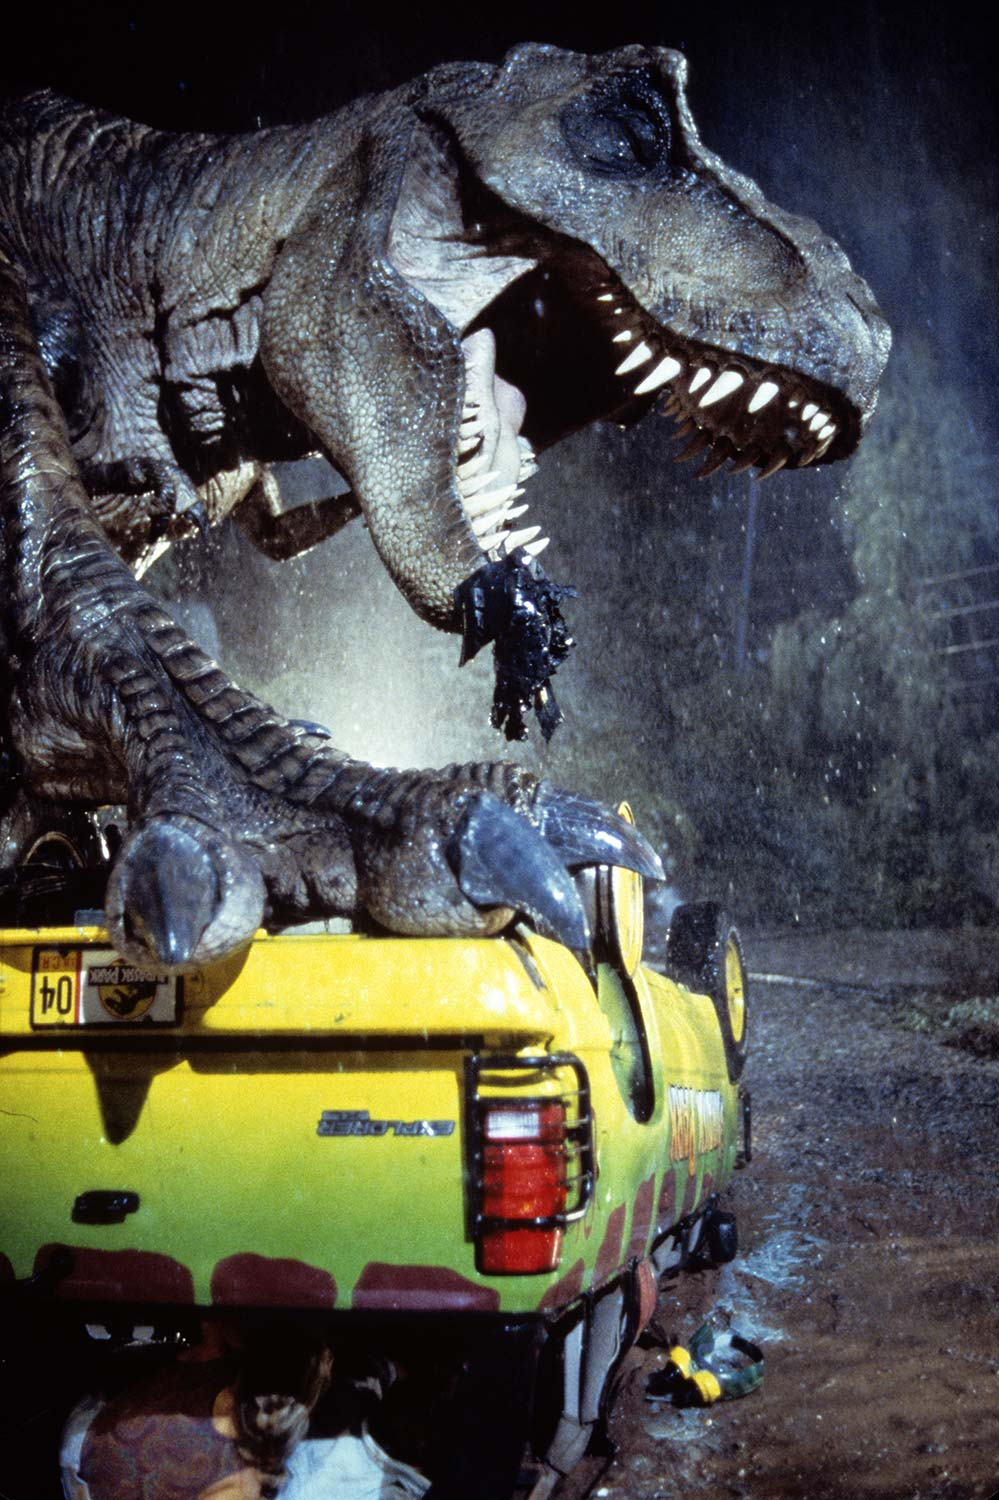 Jurassic Park Academy Of Motion Picture